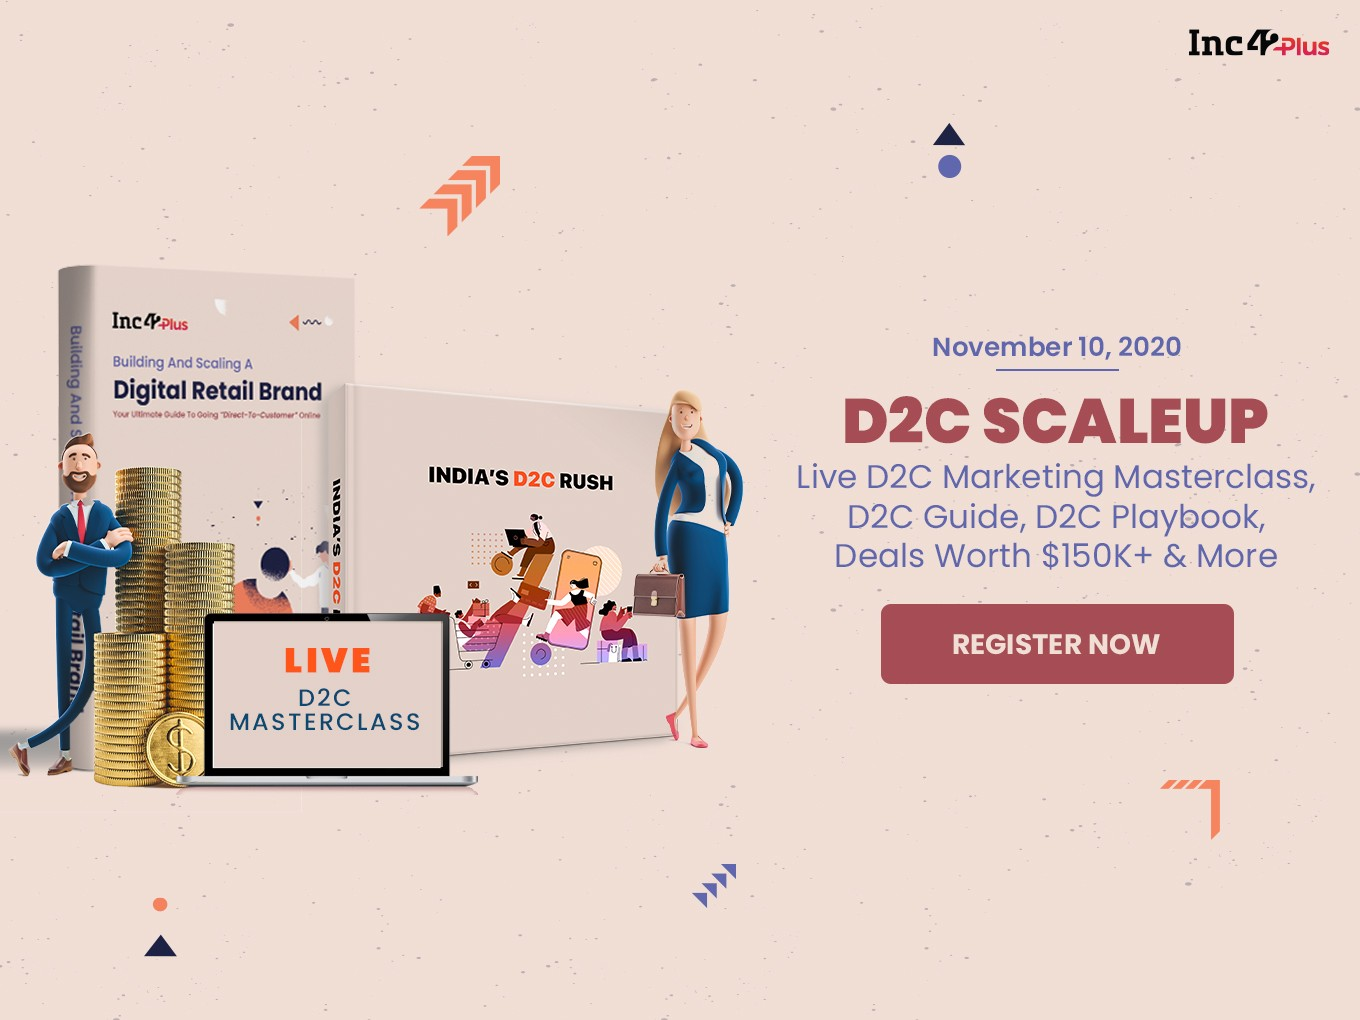 D2C SCALEUP Masterclass: Demystifying D2C Marketing For India's Retail Brands